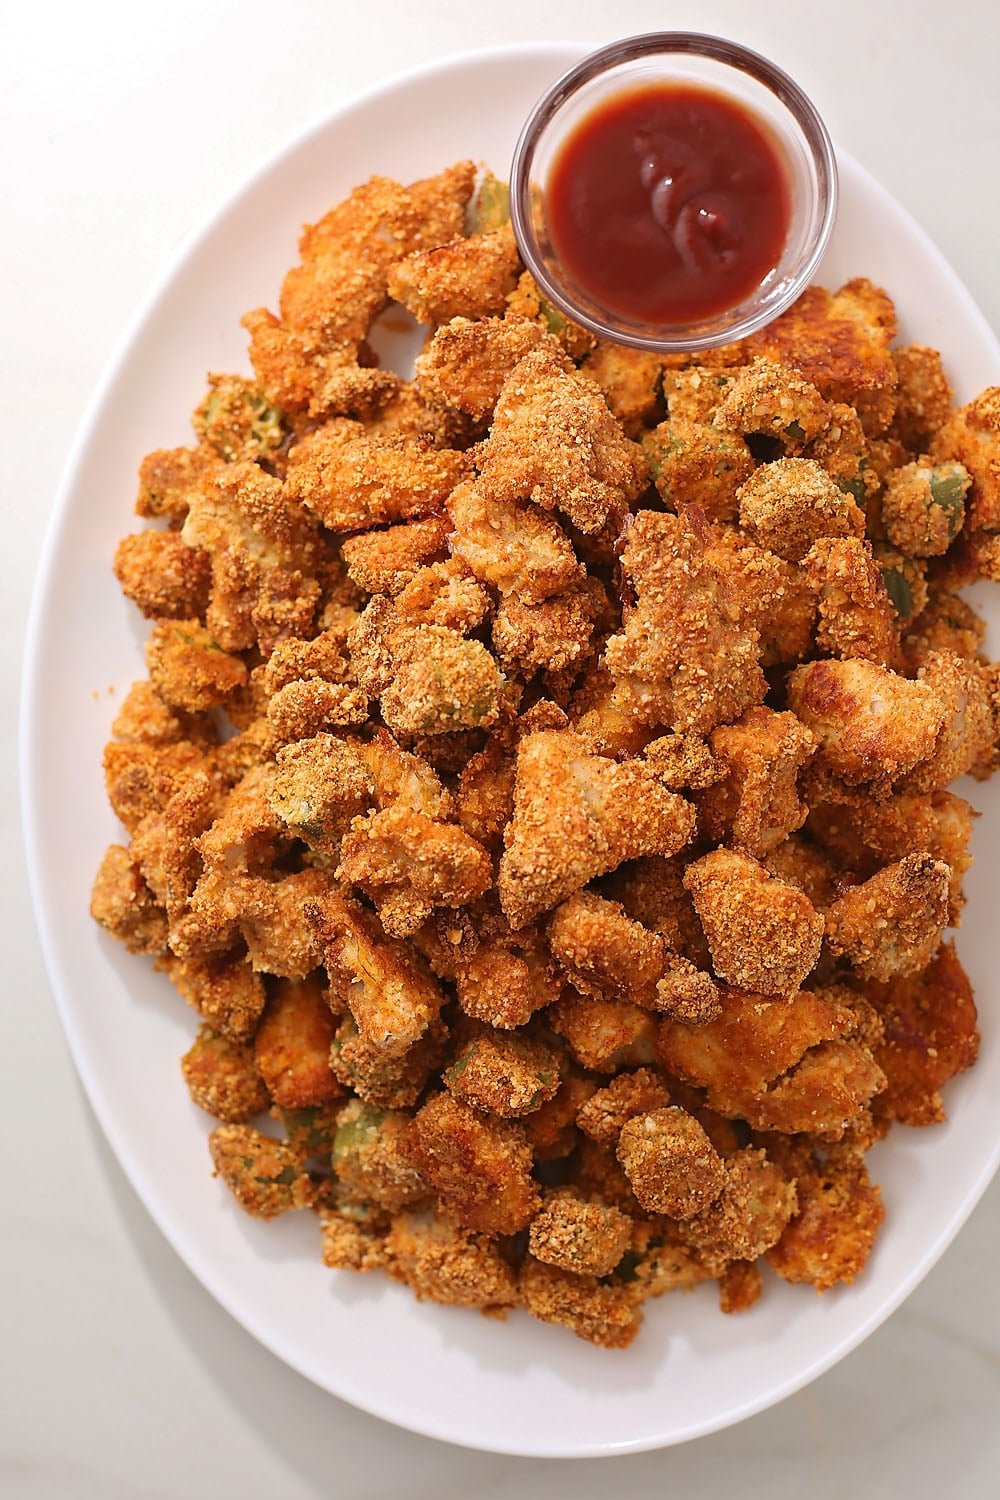 plate with fried okra and chicken